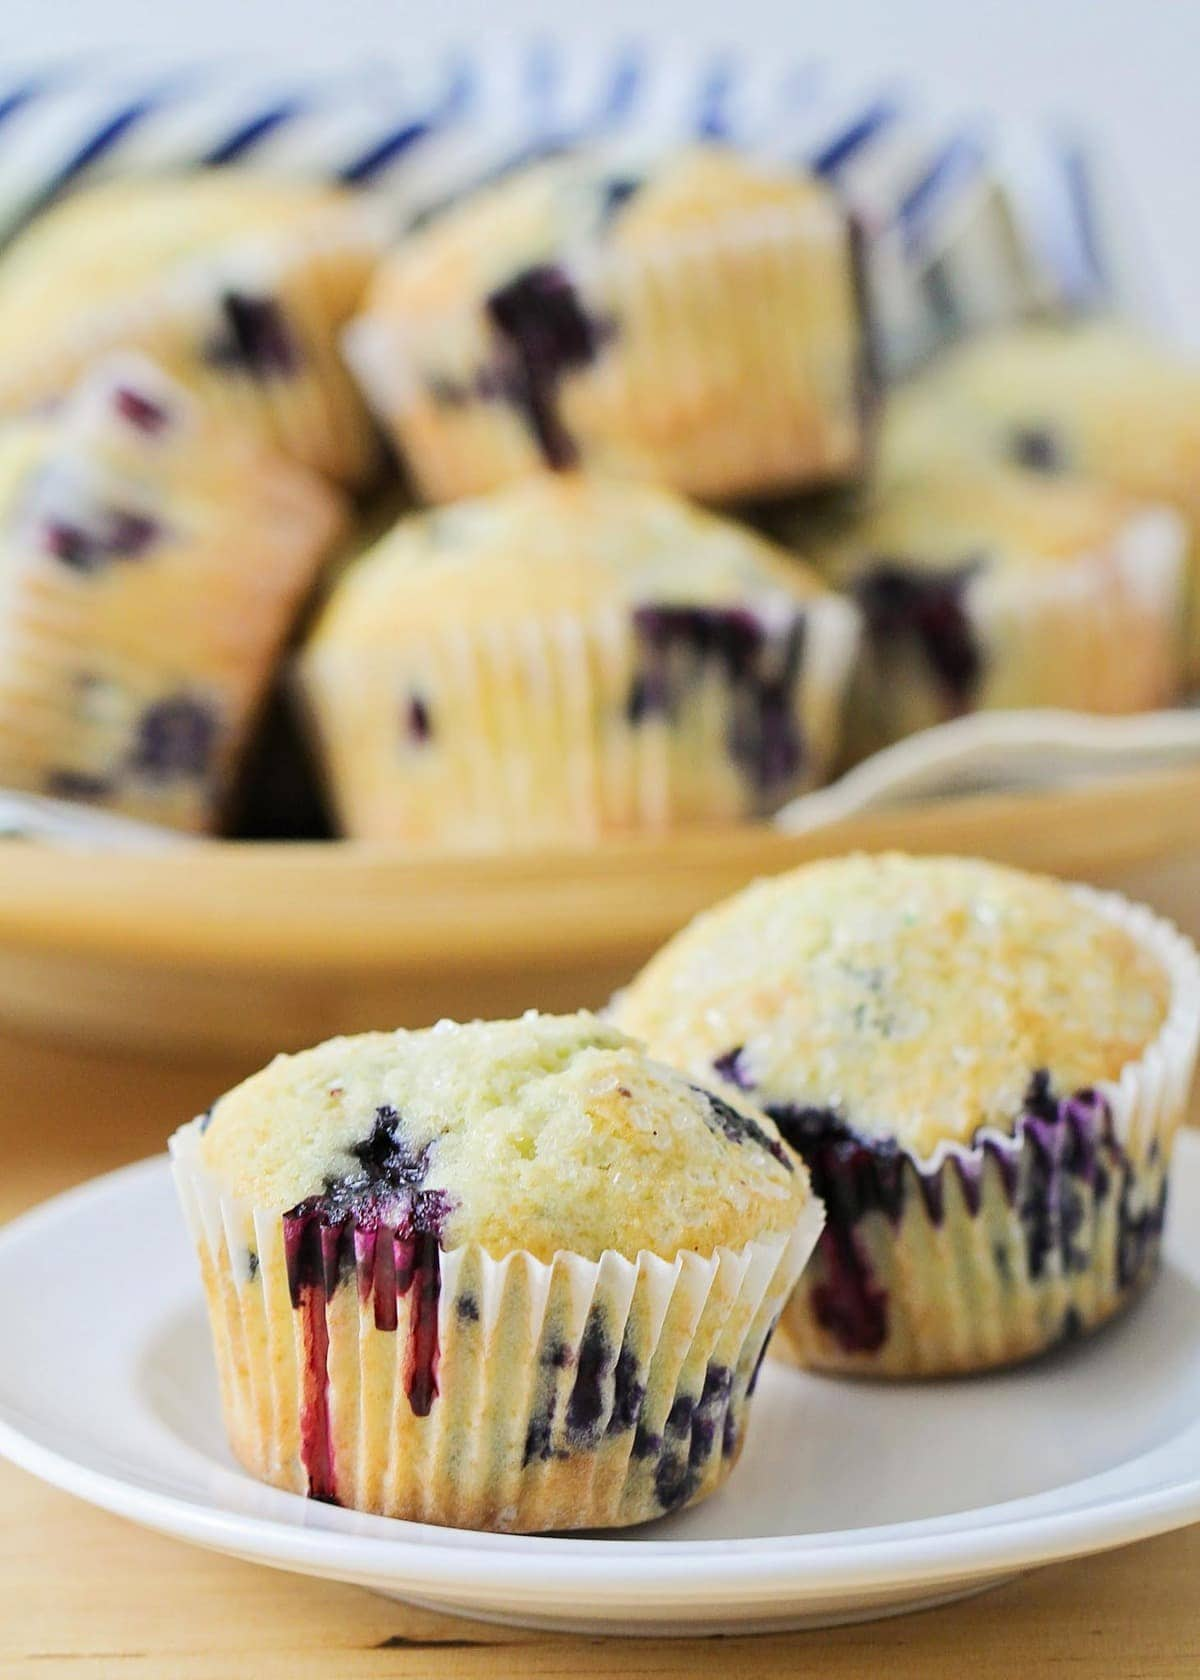 Blueberry Muffin recipe on plate